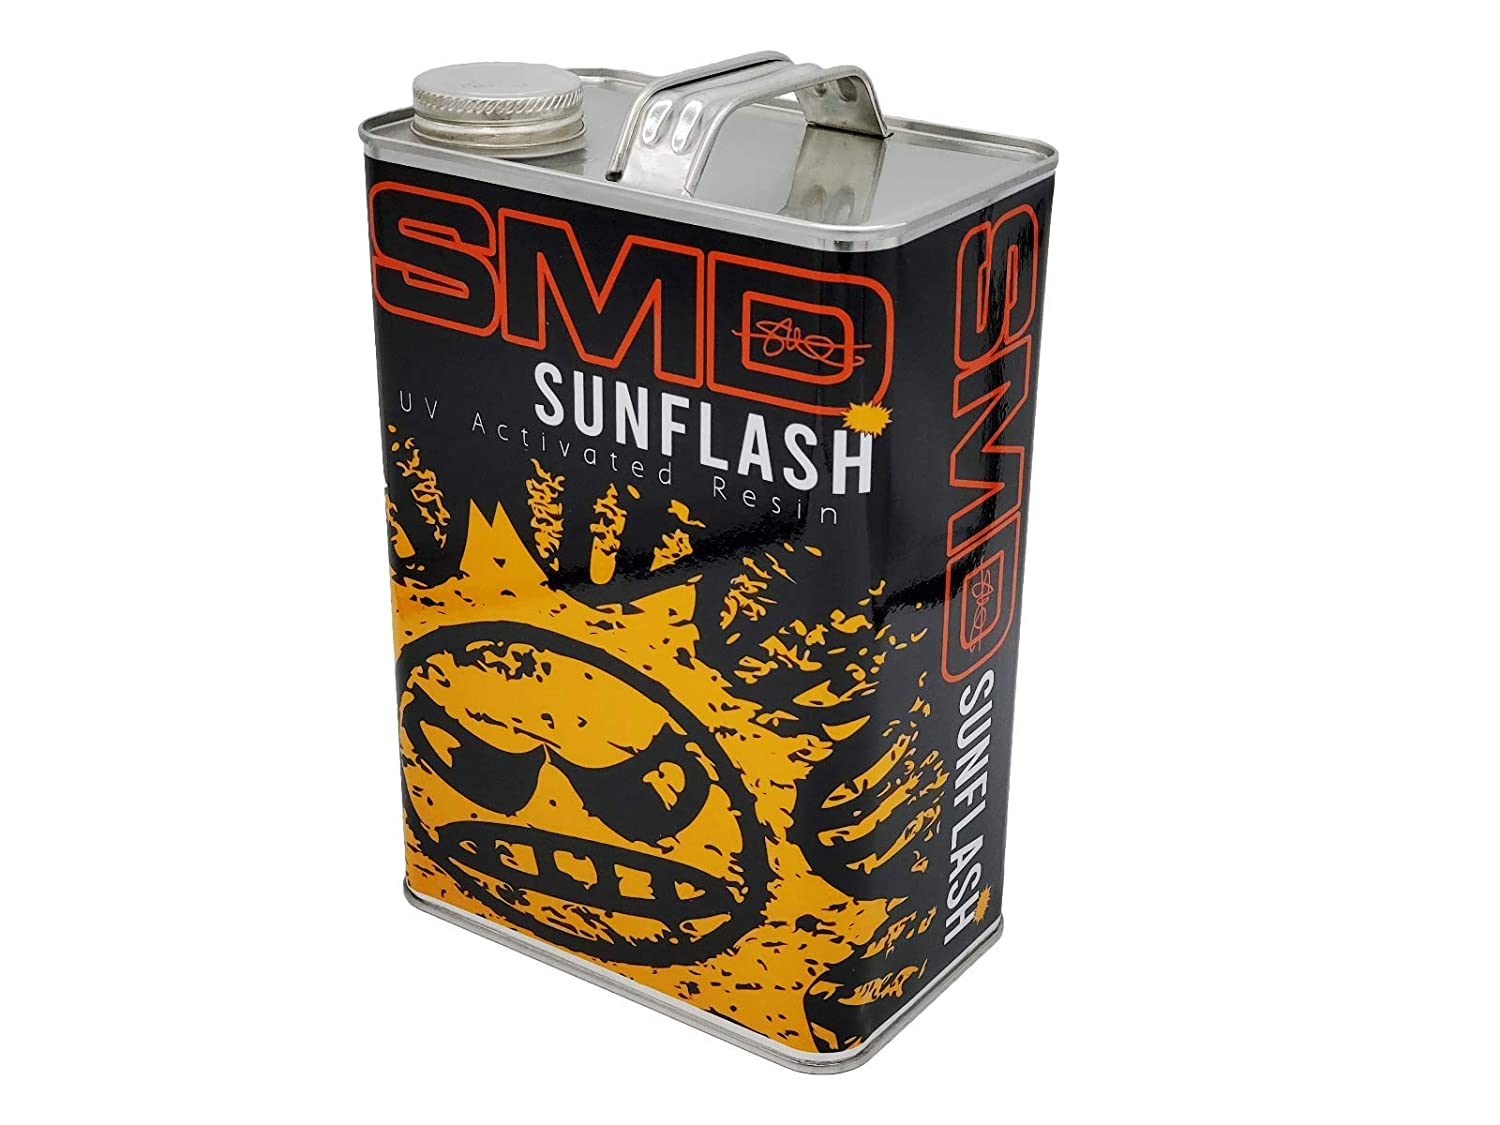 SMD SunFlash Polyester Resin